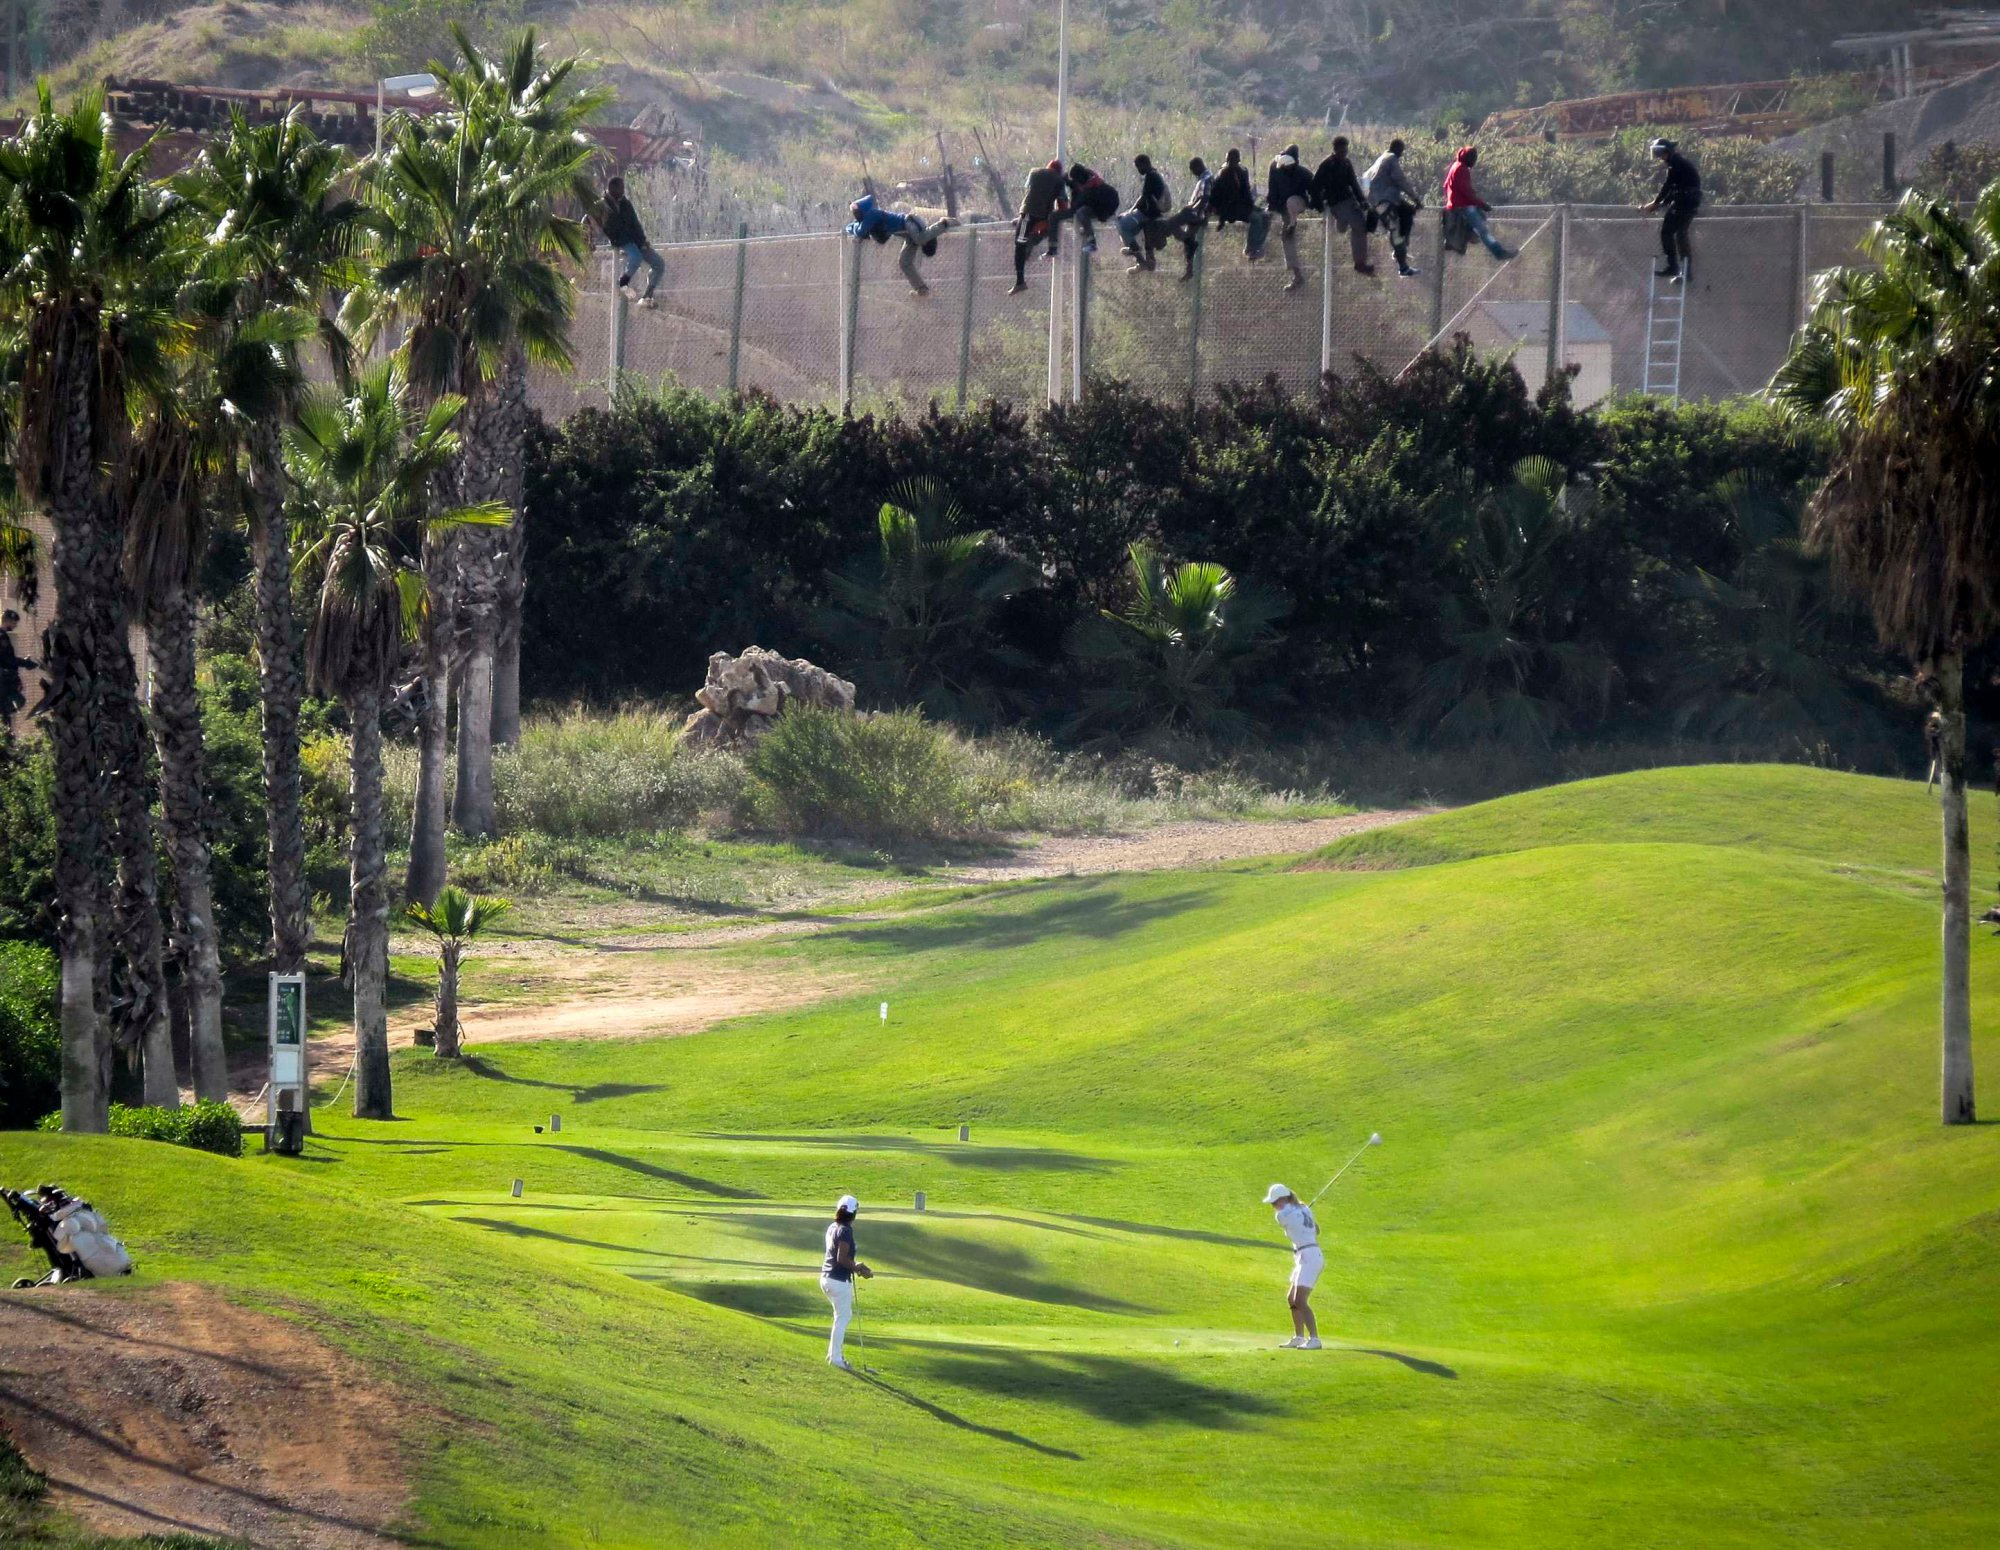 The image of two golfers playing as migrants scale a fence in the Spanish enclave of Melilla, inside Morocco, went viral earlier this year